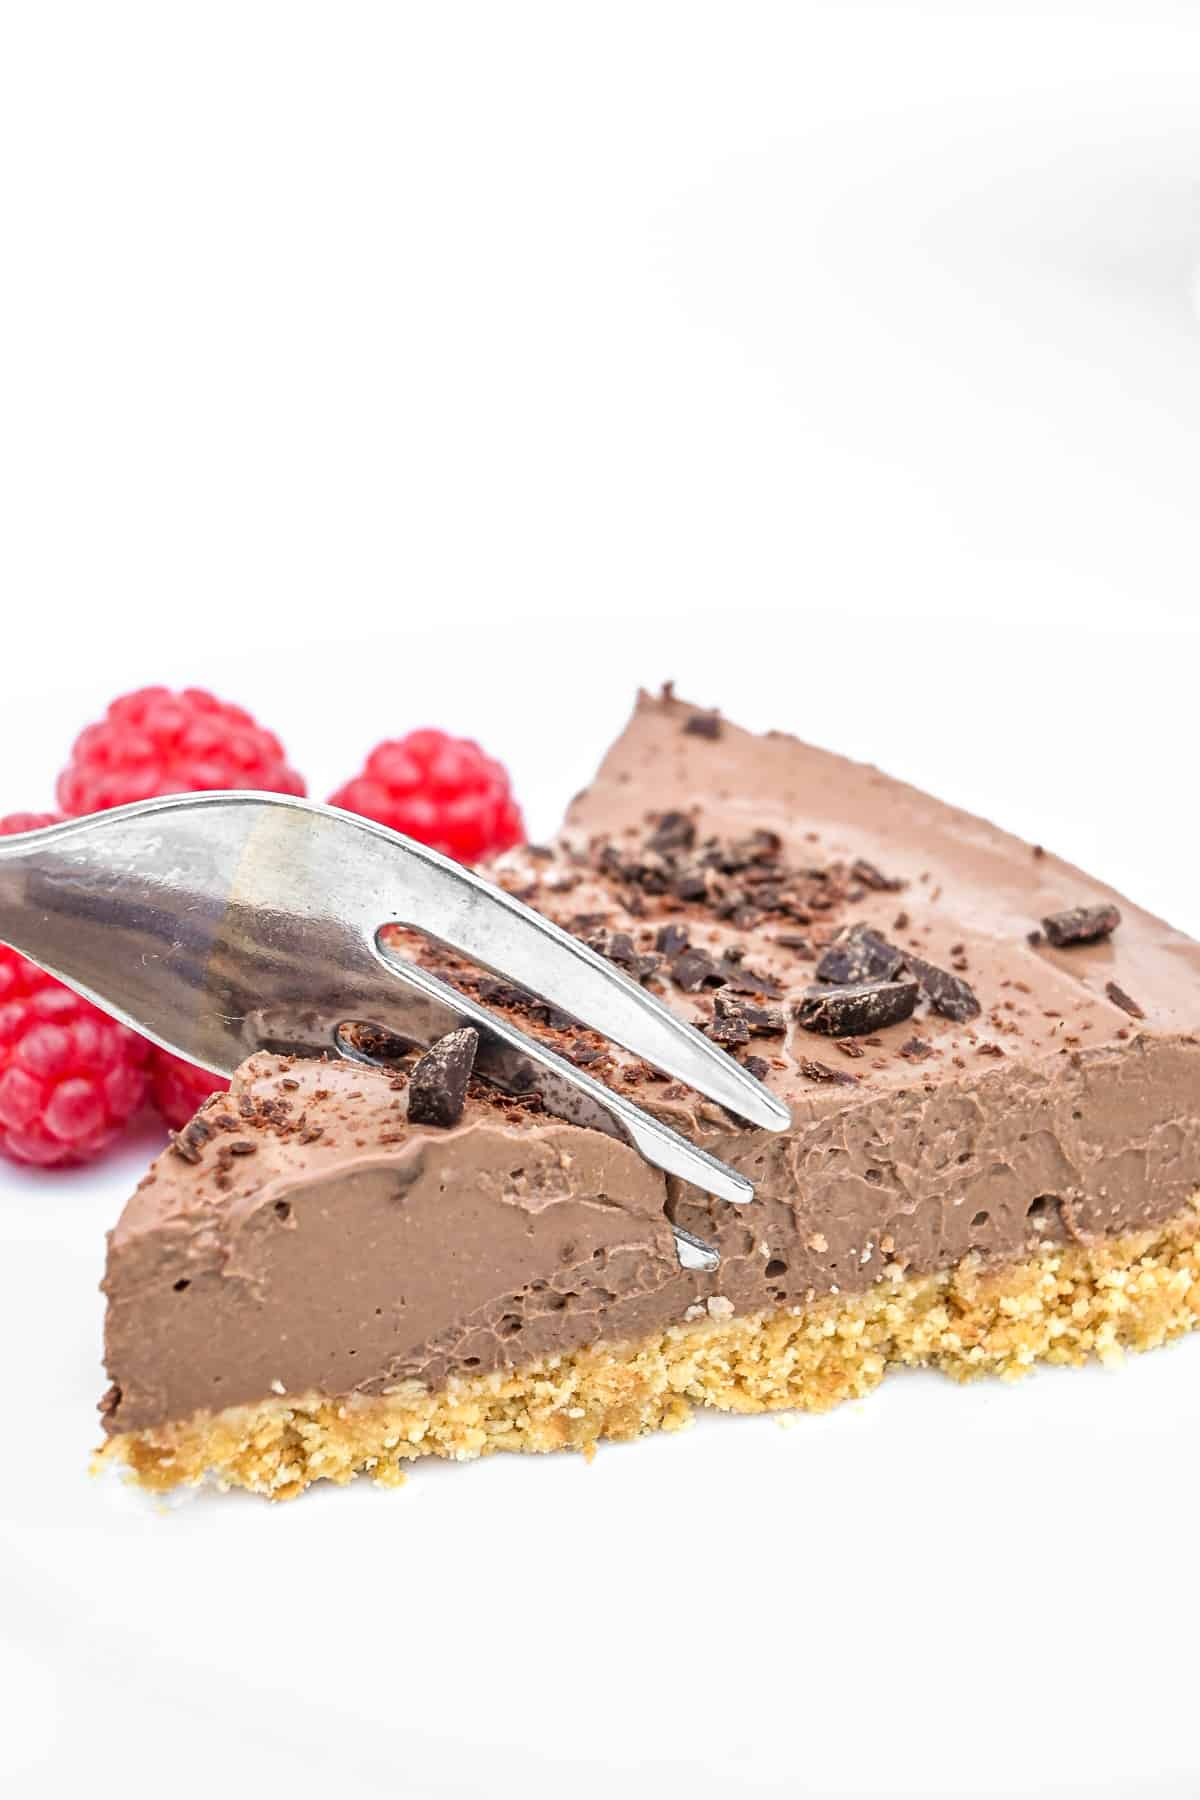 A cake fork digging into the smooth, soft but firm, chocolate filling of a slice of tart.